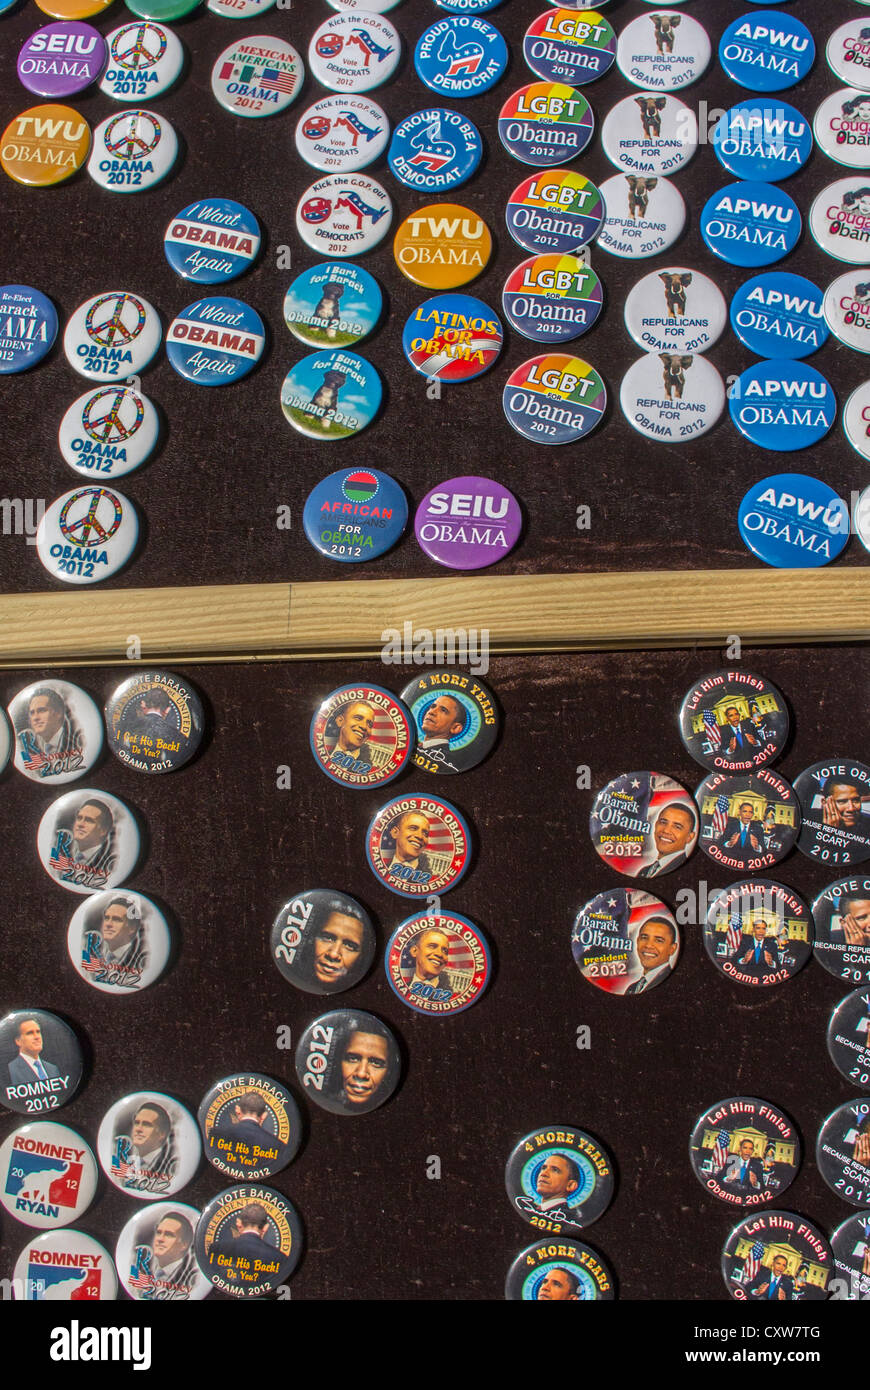 New York City, NY, USA, President Obama Presidential Campaign Buttons on Display on Street Vendor in East Village - Stock Image